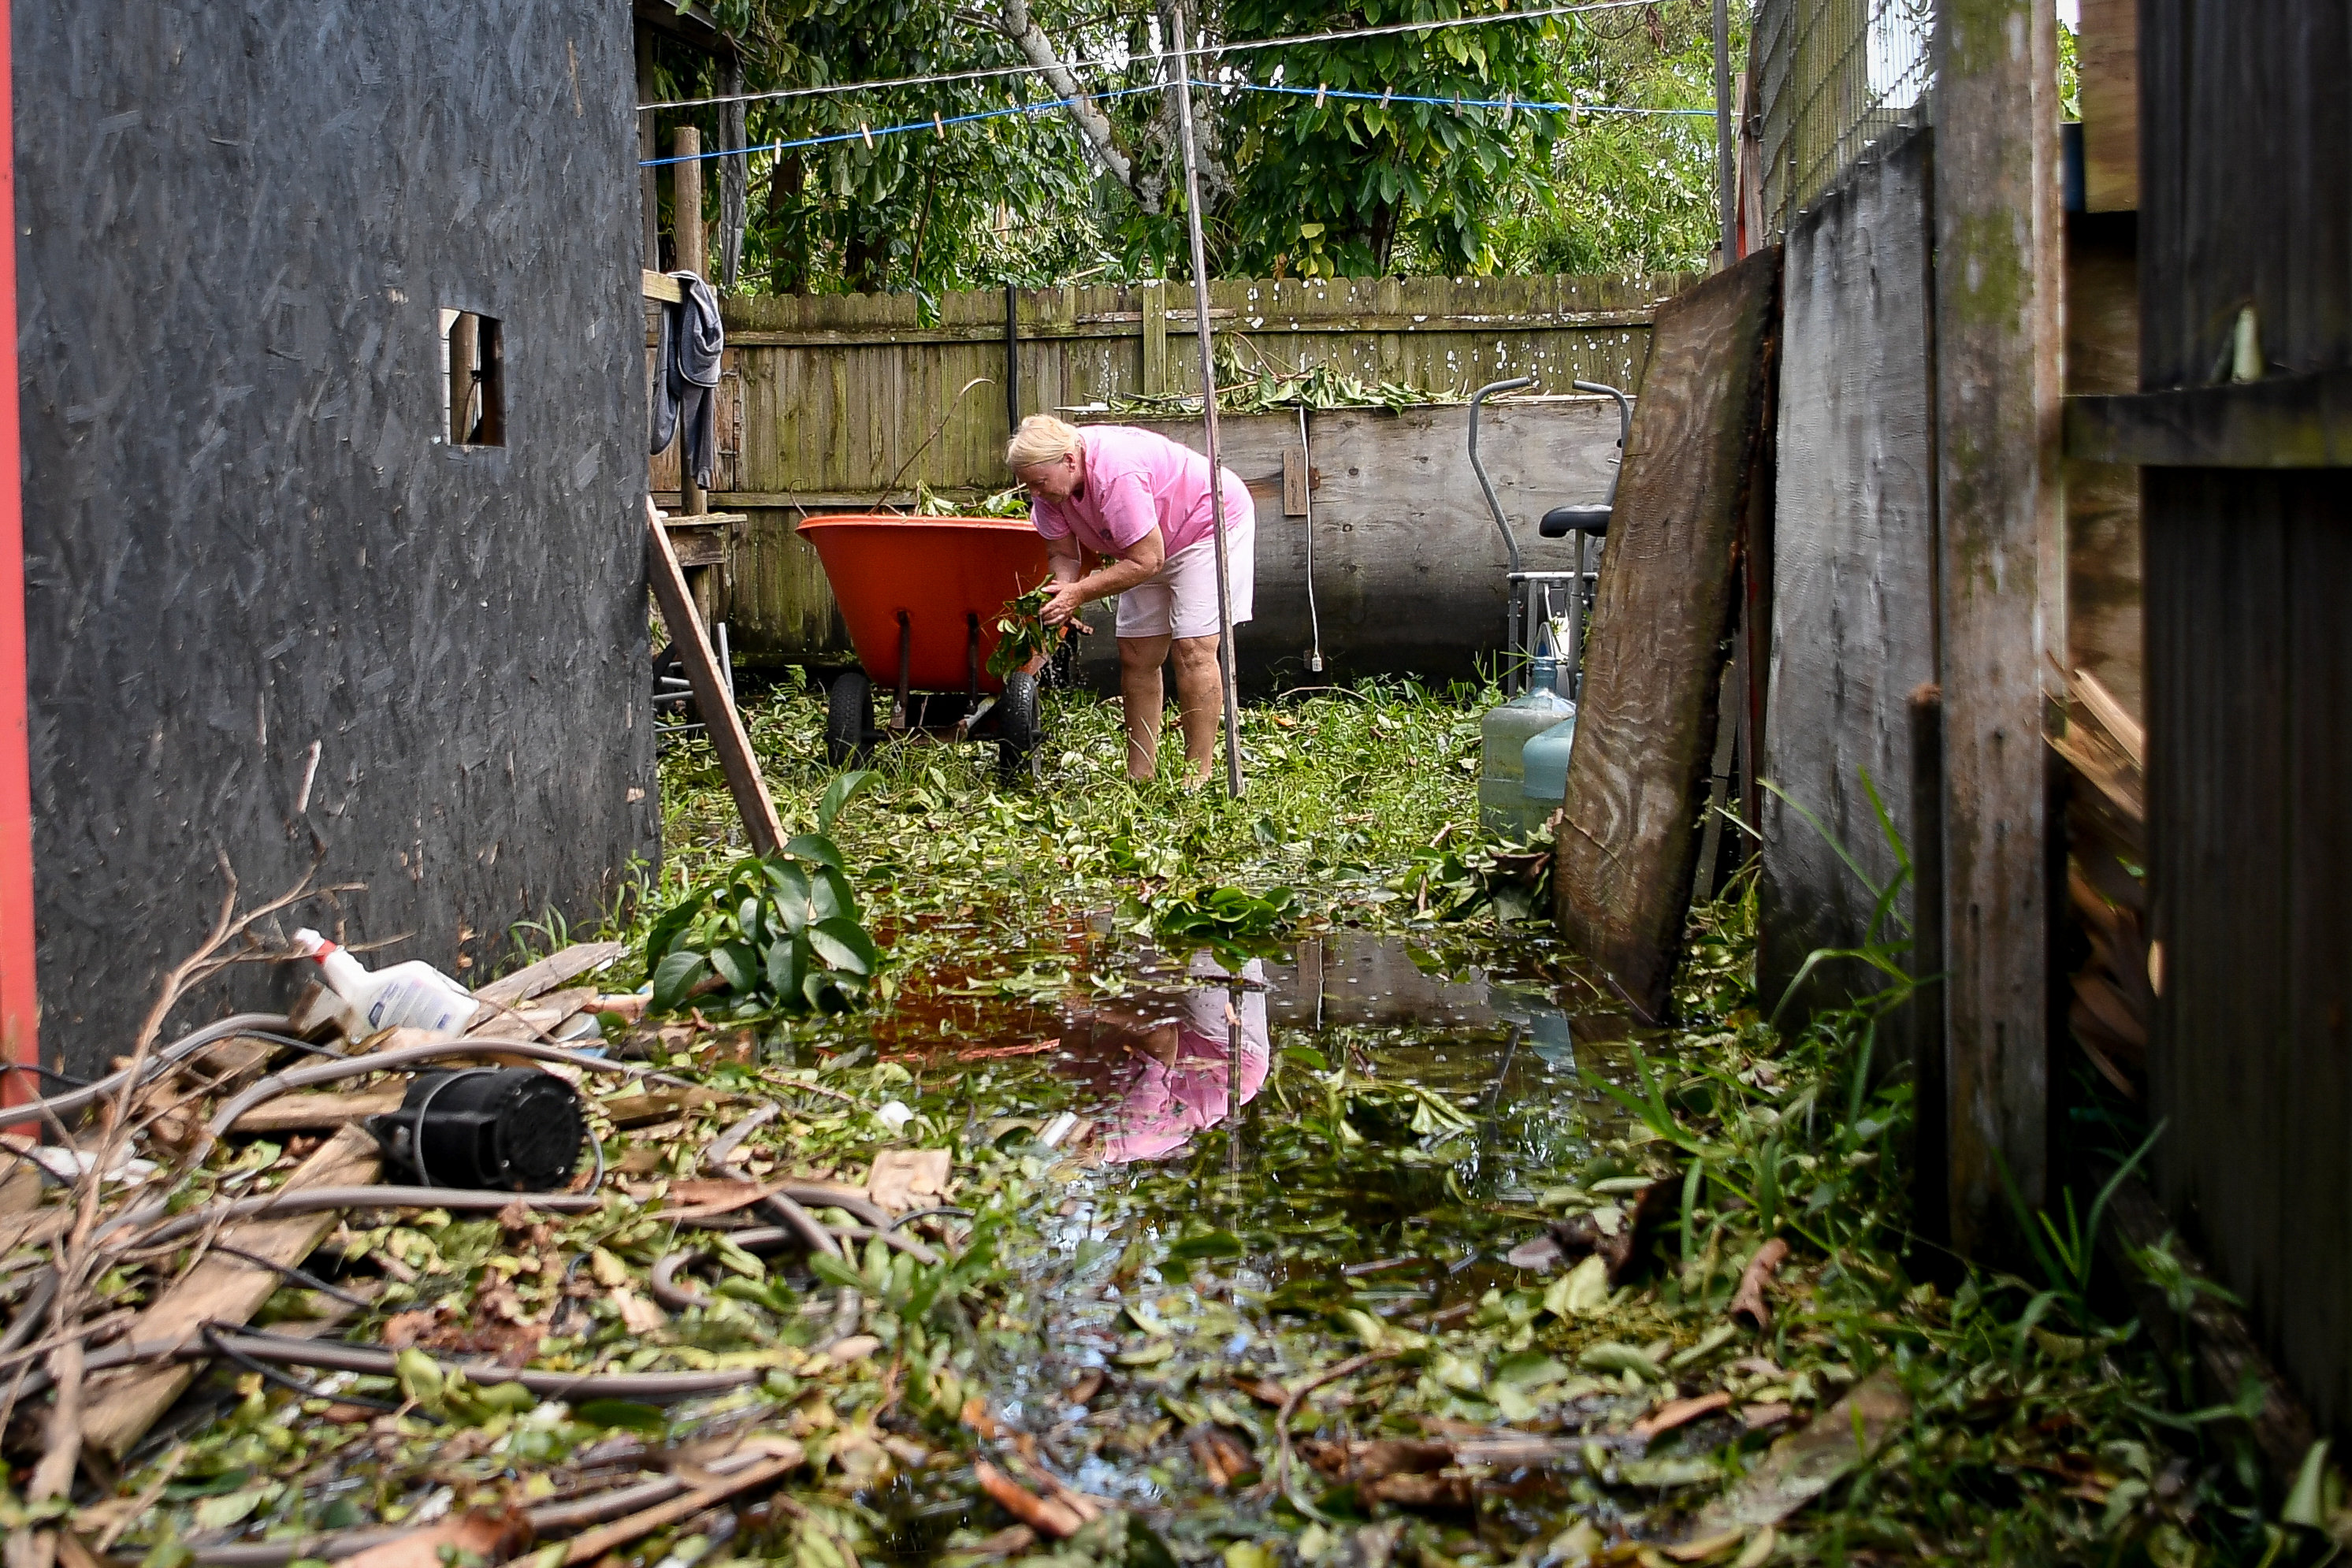 Joan Markel, stands in food waters cleaning debris from her yard, after Hurricane Irma near Jerome, Florida, U.S., September 12, 2017. (Reuters/Bryan Woolston)